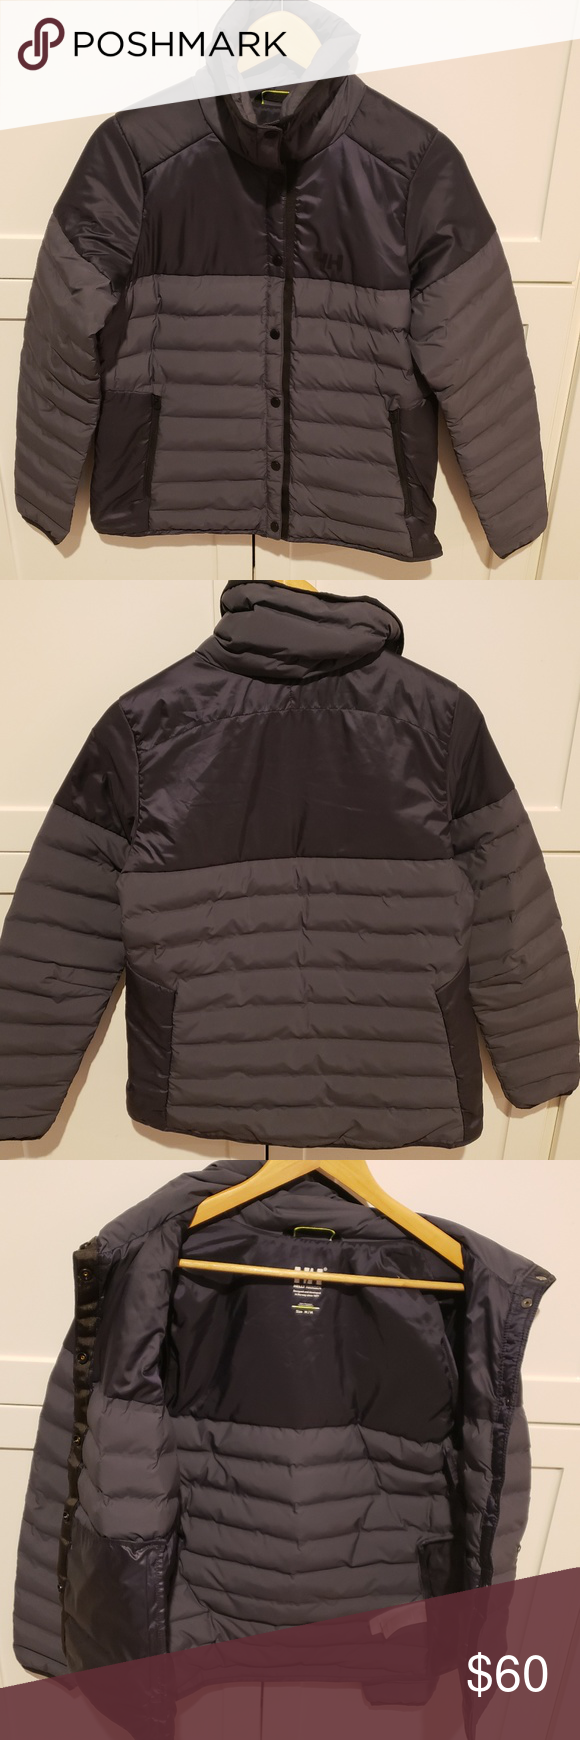 Helly Hansen Puffer Jacket Size Medium This Is A Women S Helly Hansen Puffer Jacket In Size Medium It Is Grey Clothes Design Puffer Jackets Jackets For Women [ 1740 x 580 Pixel ]